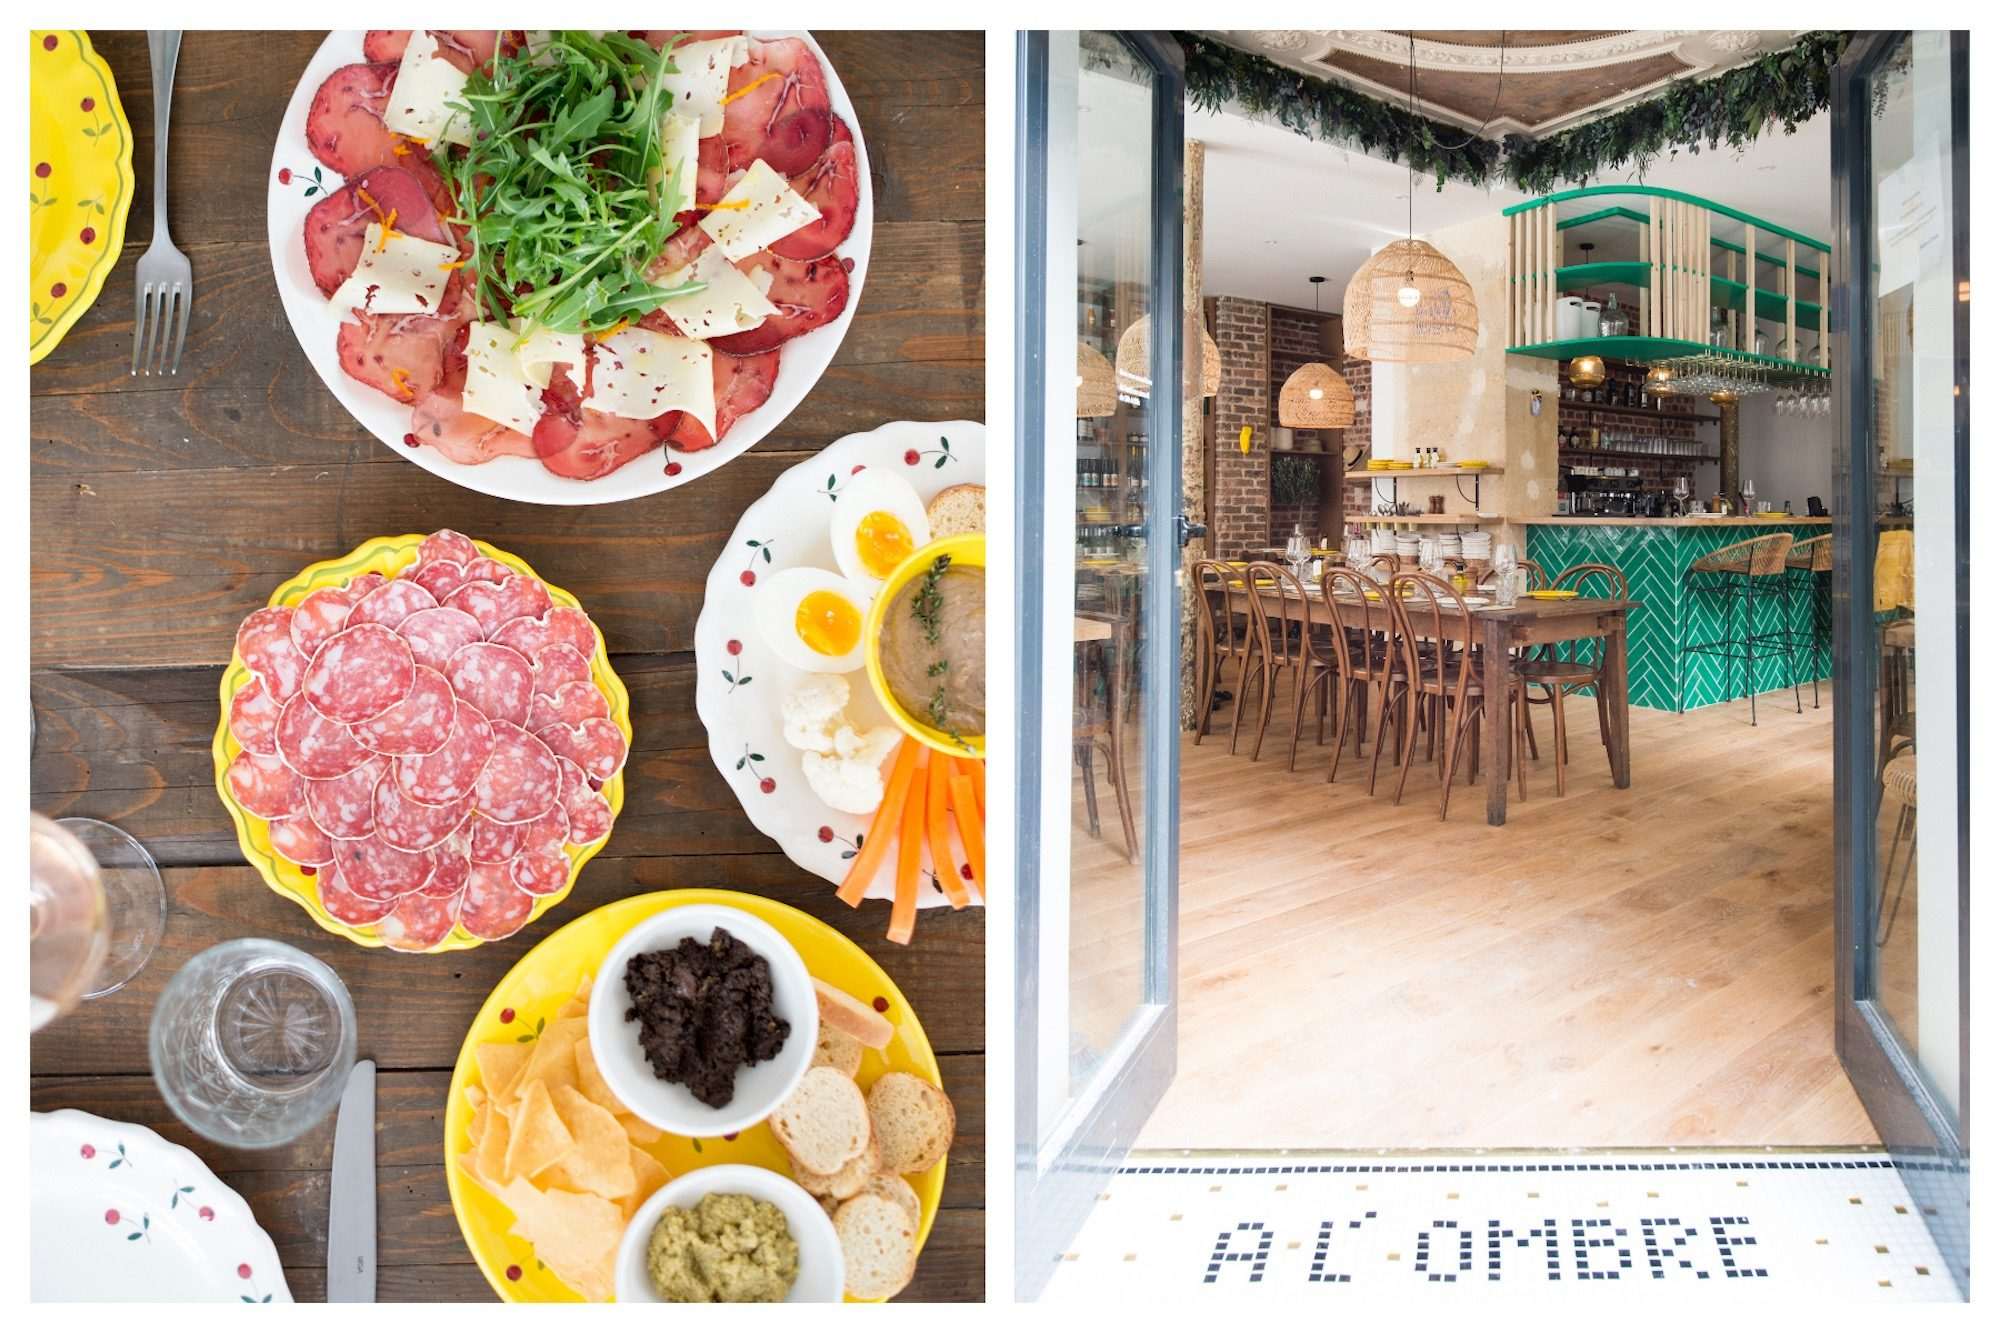 One of our favorite places to go for small plates in Paris is A L'Ombre (literally 'In the shade') restaurant, which serves tomato and mozzarella salads as well as ham and cheese (left). The interiors of A L'Ombre restaurant in Paris are cheerful with eye-popping turquoise tiles and timber tables and chairs (right).